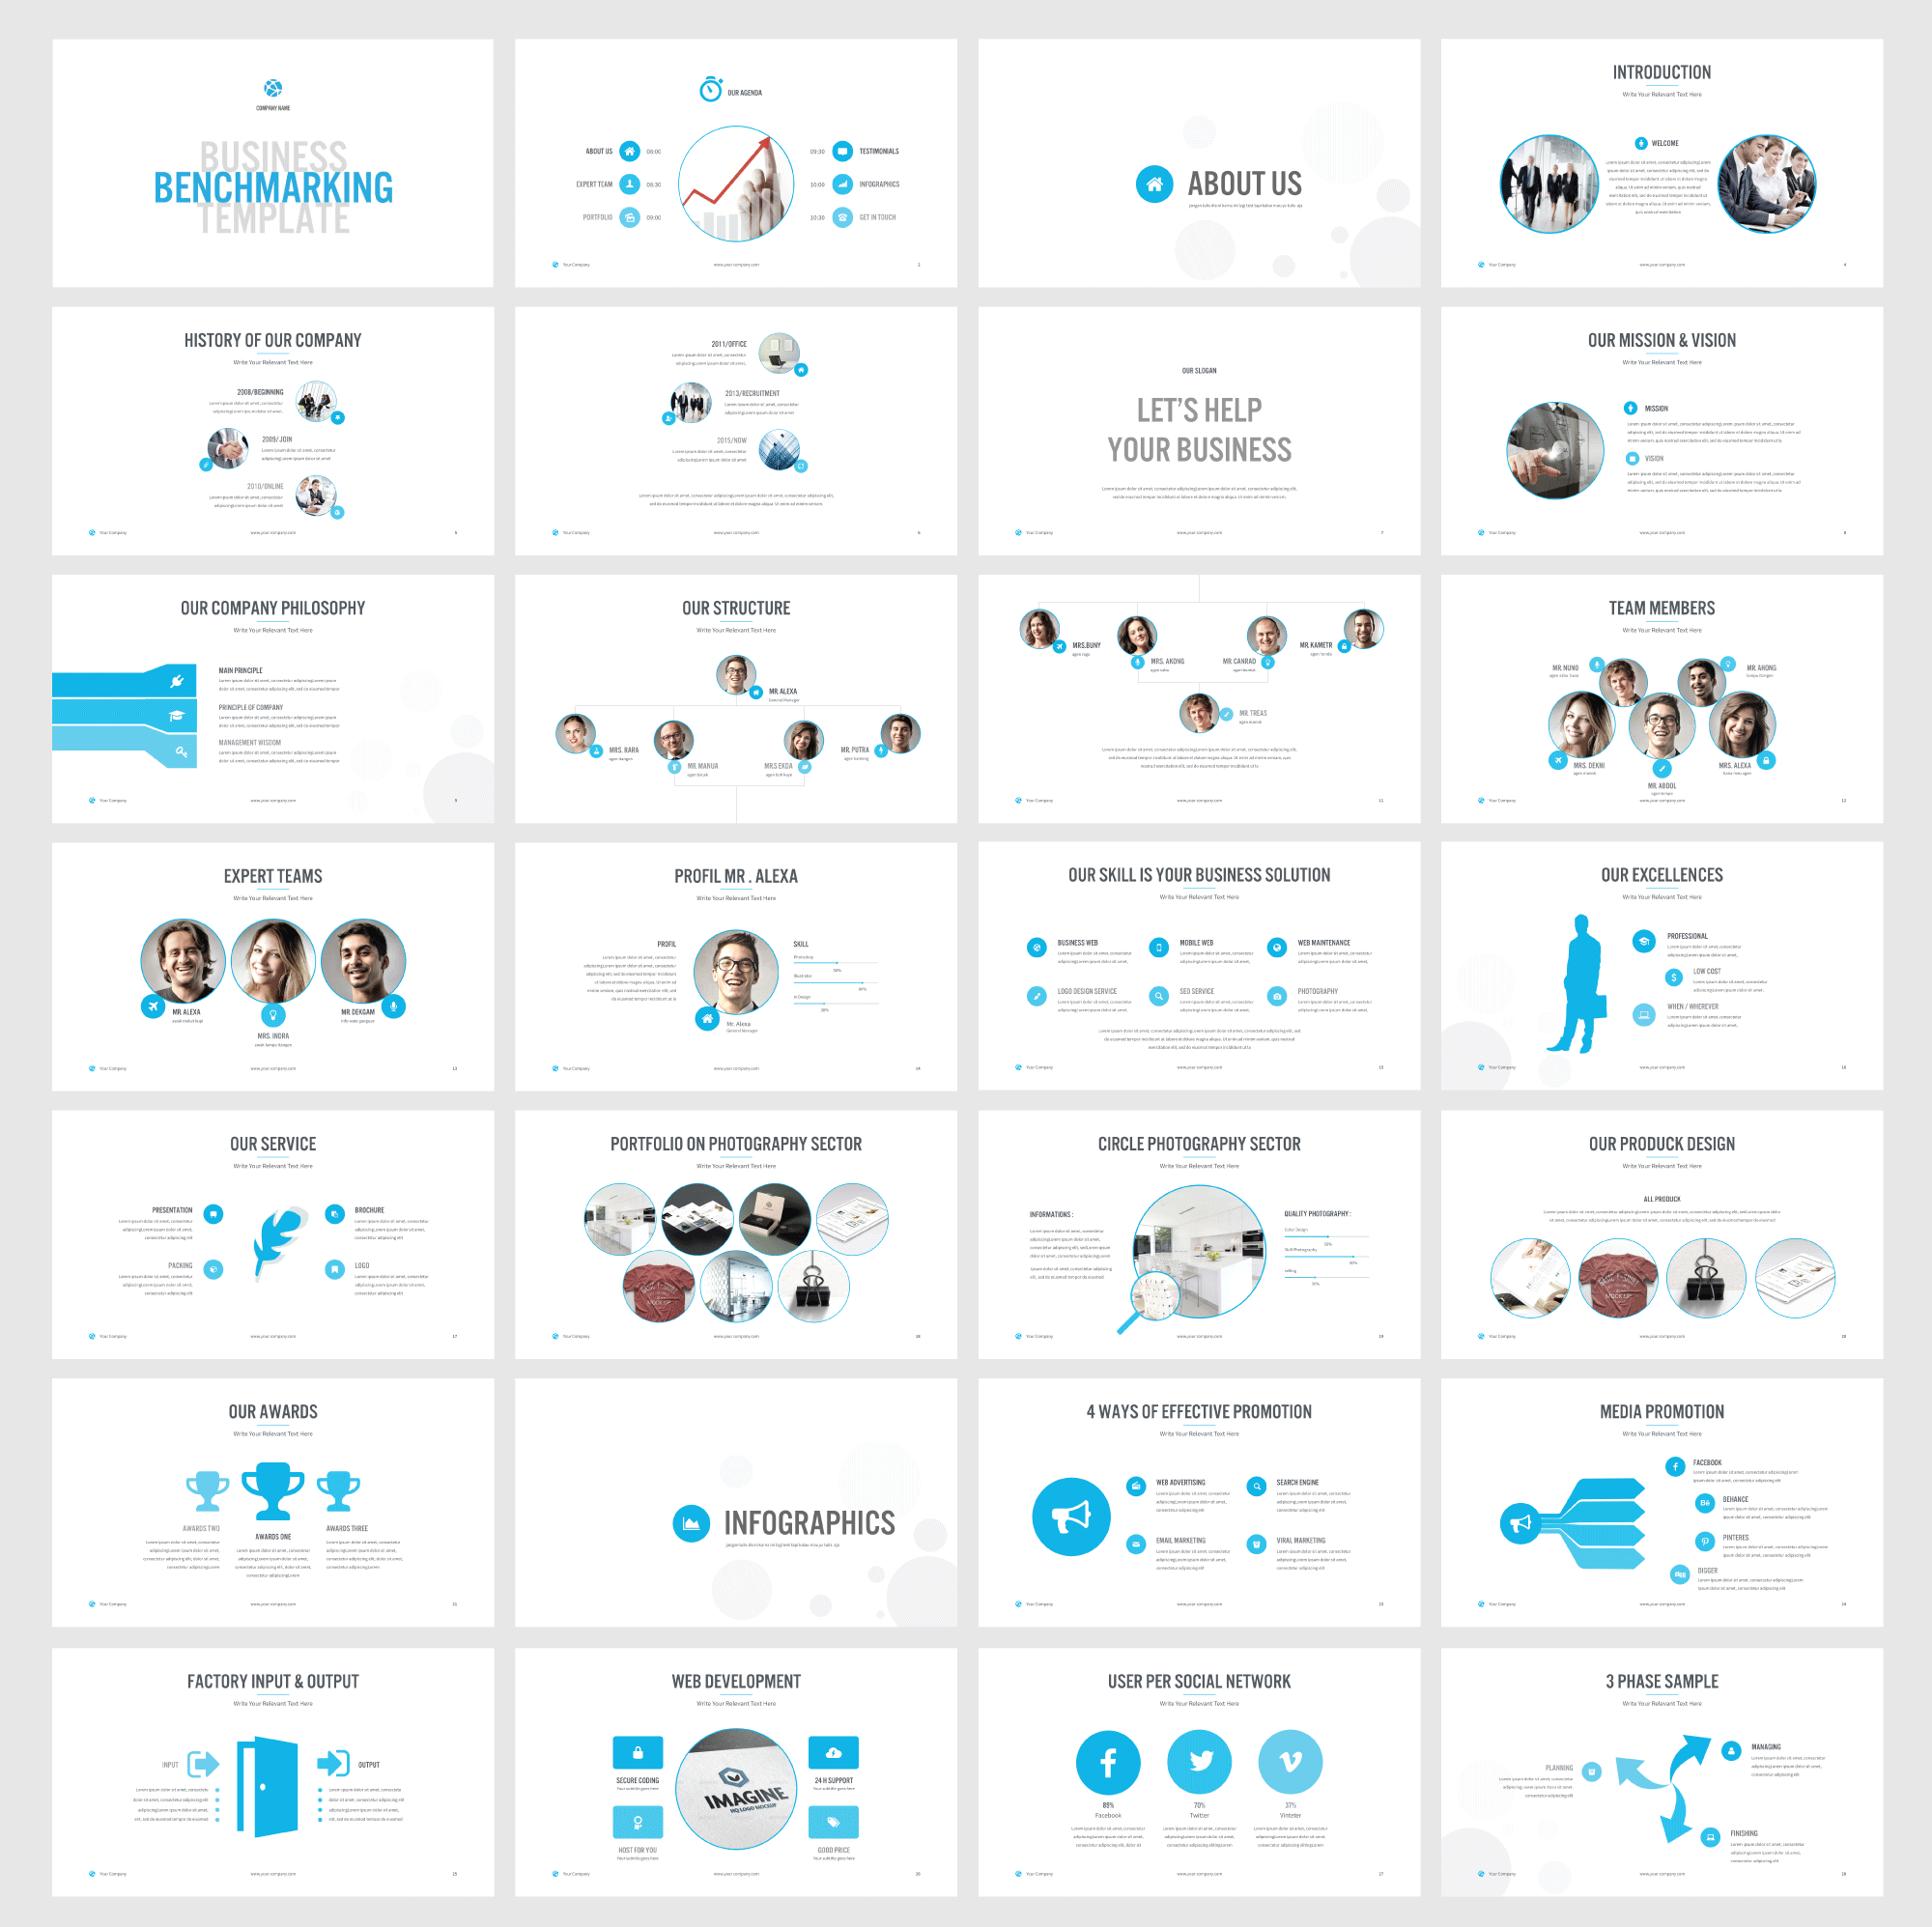 Benchmarking powerpoint template by shafura on creative market benchmarking powerpoint template by shafura on creative market toneelgroepblik Images